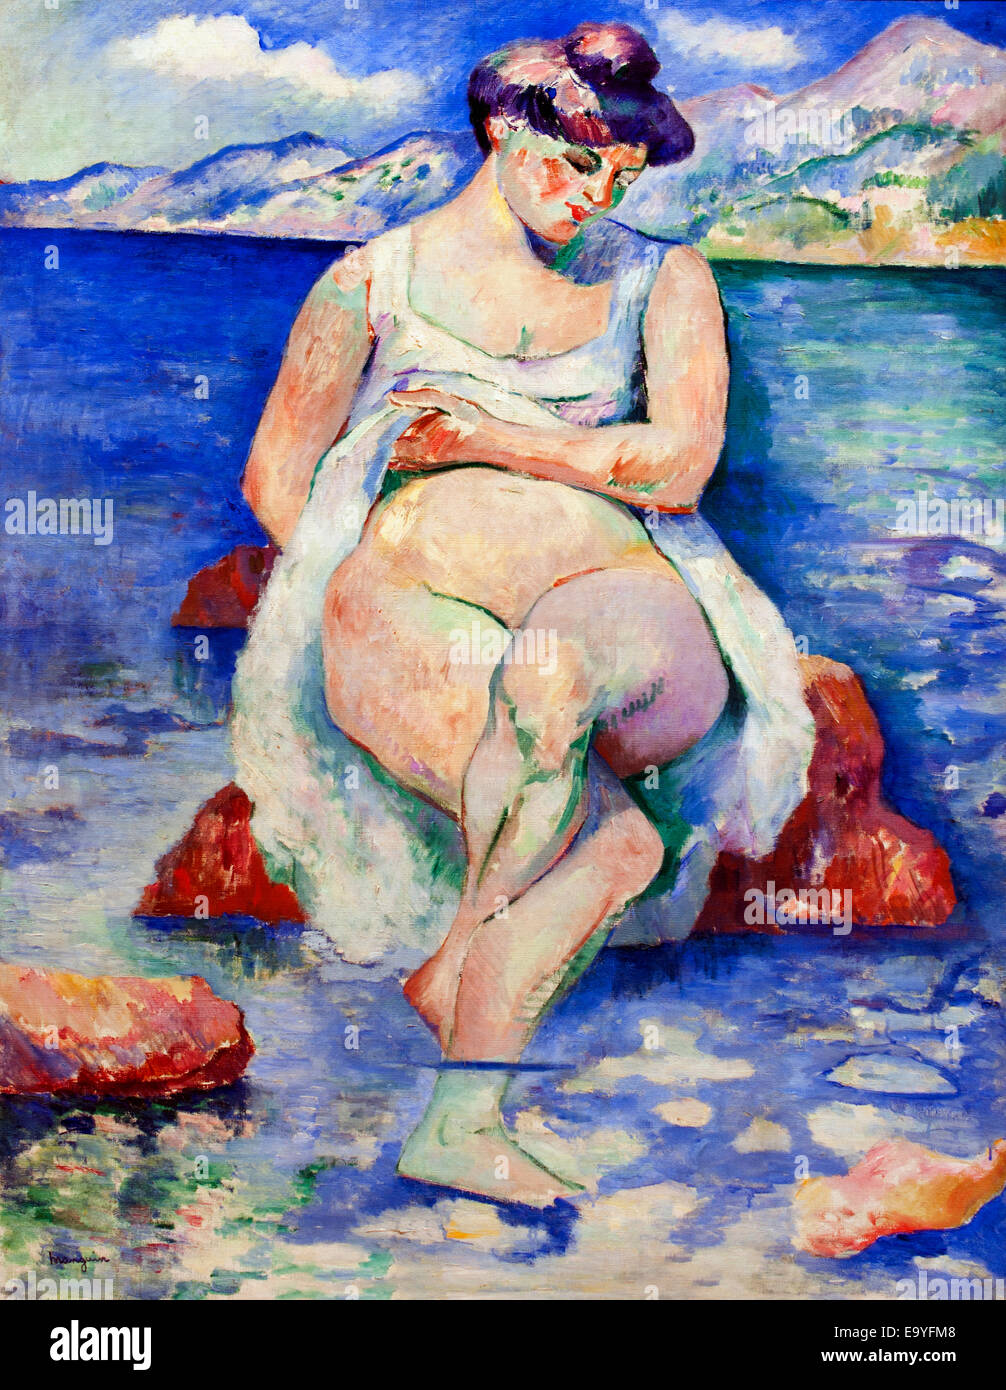 La Baigneuse - The Bather 1906 Henri Manguin 1874-1949 France French - Stock Image